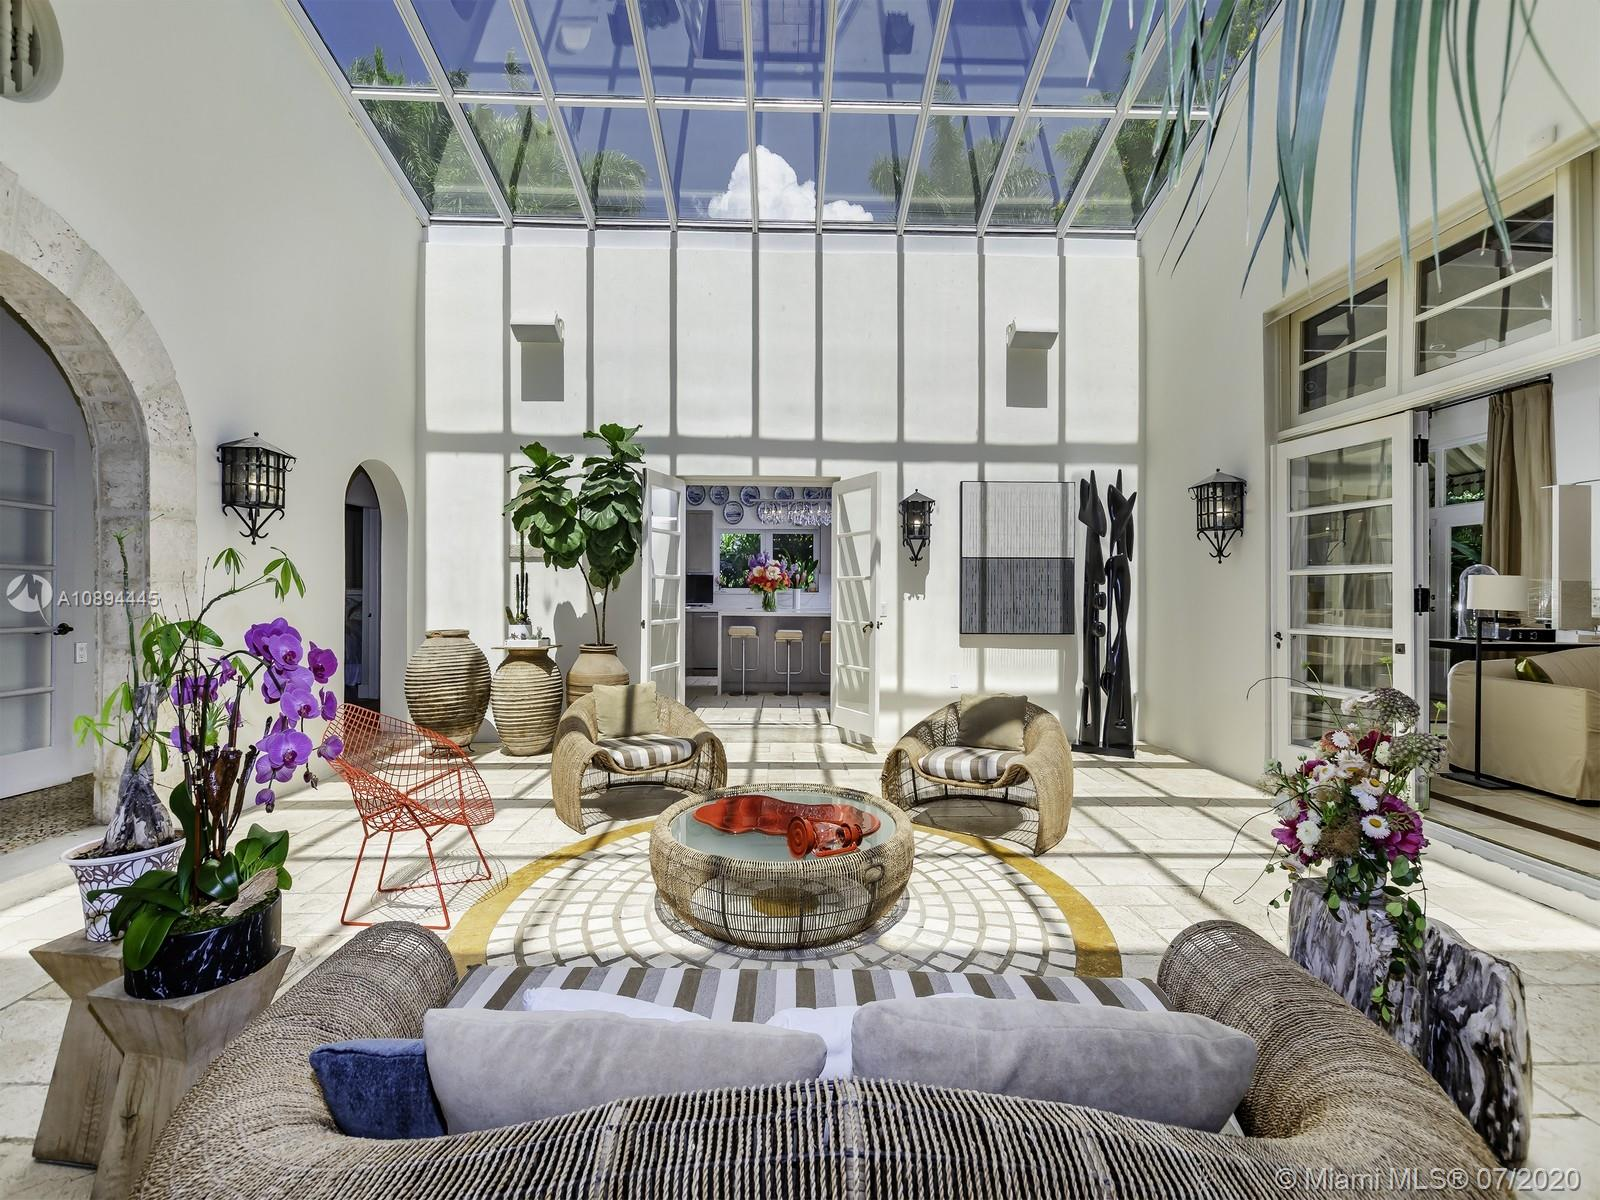 One of a kind tropical Coconut Grove oasis by renowned architect Walter C. DeGarmo. This 5,845 sqft adj Smart home sits on a beautiful 24,000 Sq.Ft lot, this home features wood & tile floorings as well as  5 bdrms + 5.1 bthrms, 2 car garage. 1st floor features courtyard style layout w/sunroof, formal living room & dinning room + foyer, 2 guest bdrms, half bath, family room, library area & completely updated kitchen w/Wolf gas stove & luxury appliances Subzero & Miele and quartz countertops & island. 2nd floor offers Master suite, updated master bath with steam room and stunning his and hers walk in closets + terrace + office with full bathroom. Guest home offers additional bdrm, bthrm, wine cellar + laundry. Stunning outdoor spaces with pool, lounge area + fountains